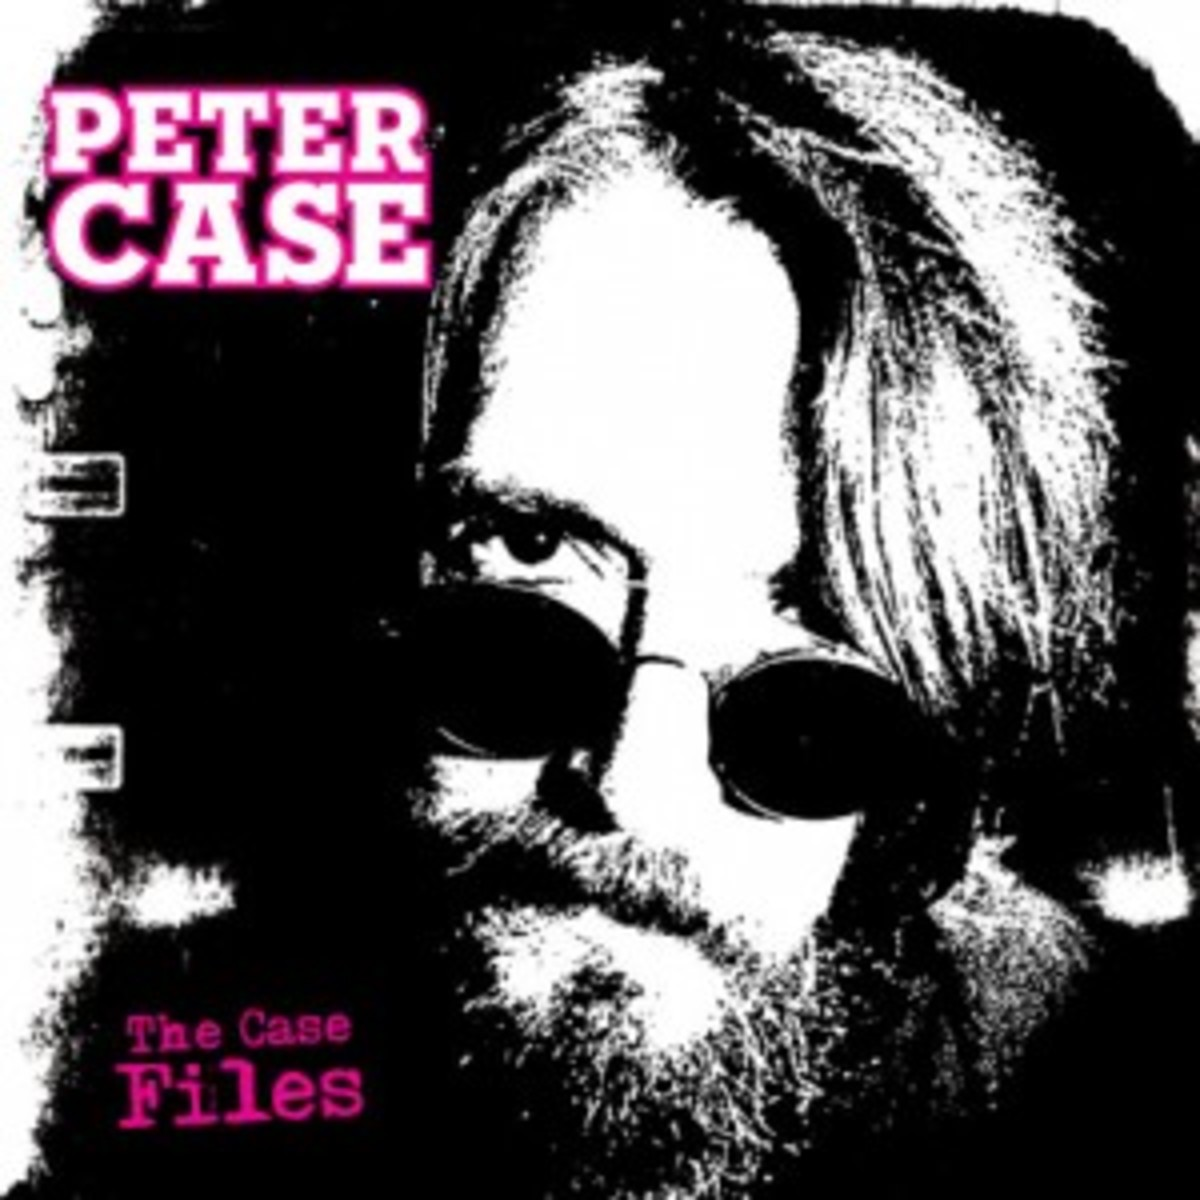 PeterCase_Cover.indd